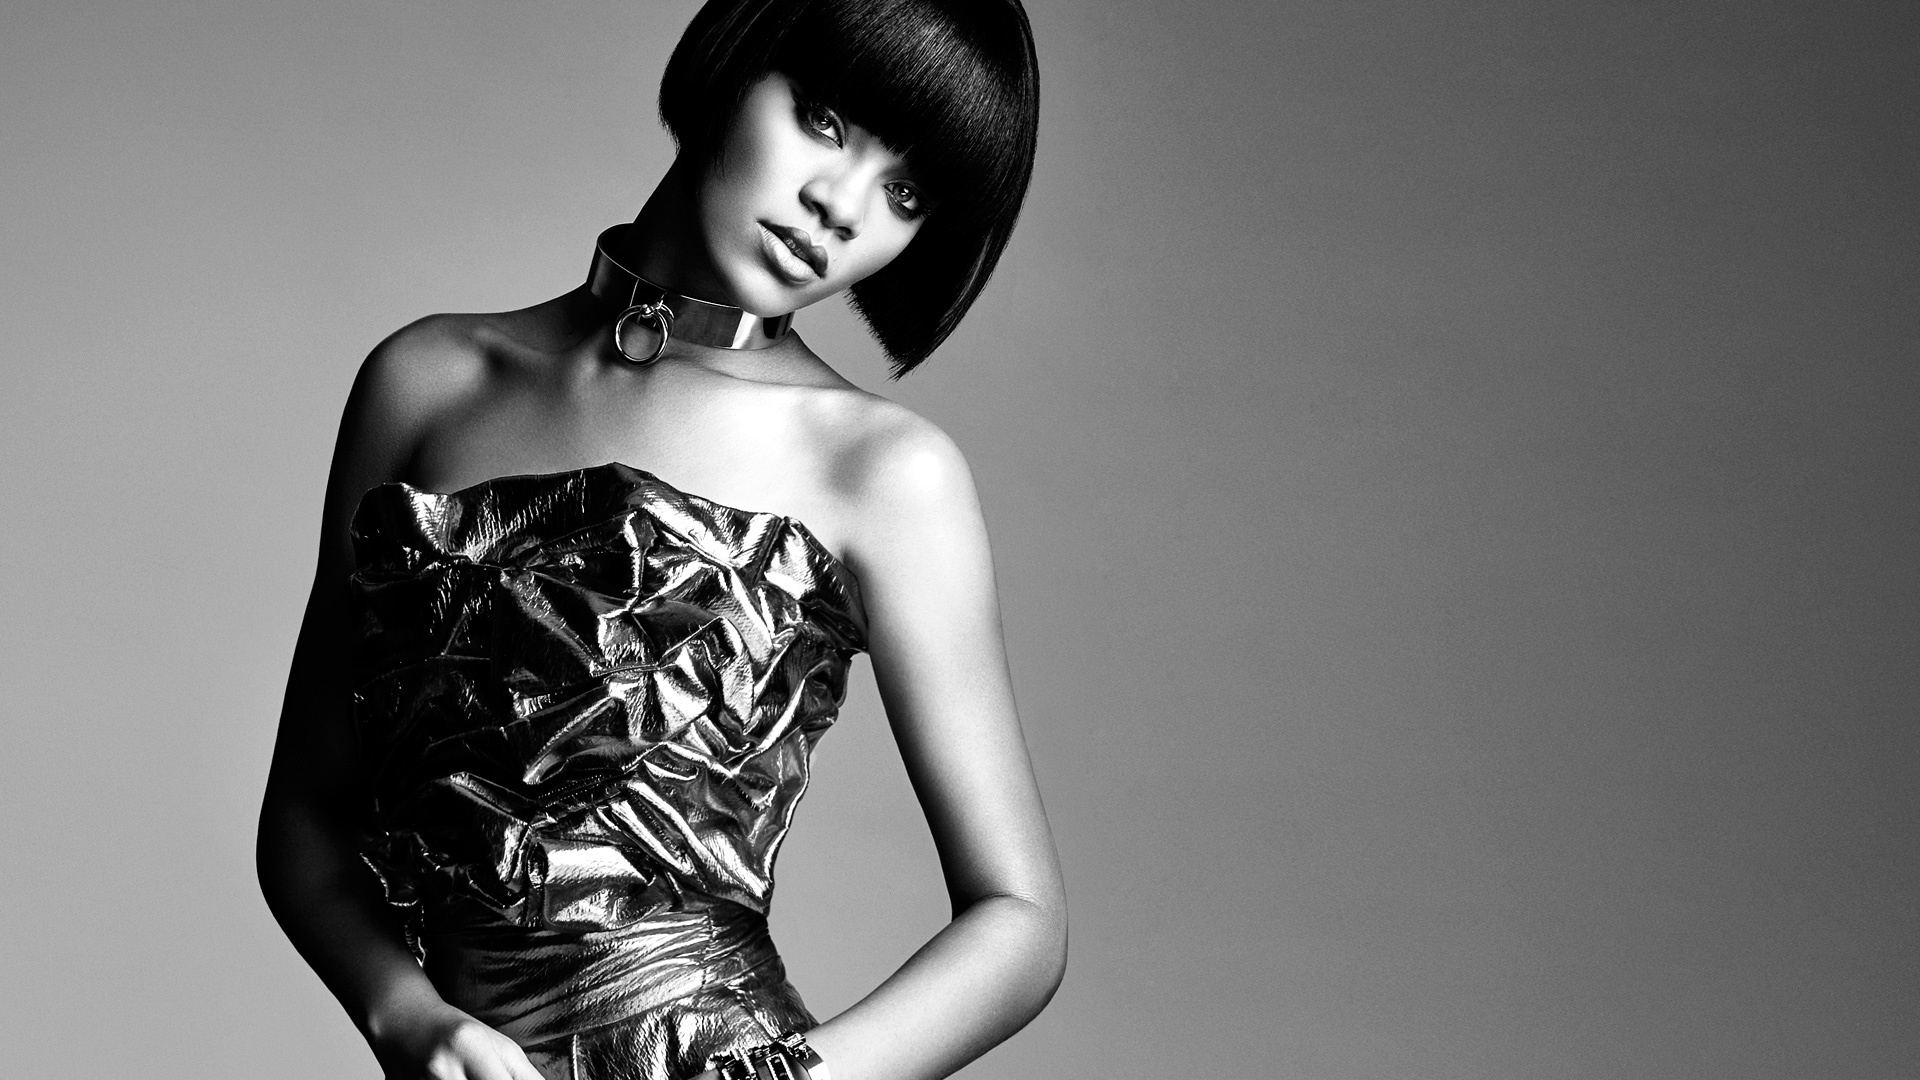 rihanna wallpapers hd A5